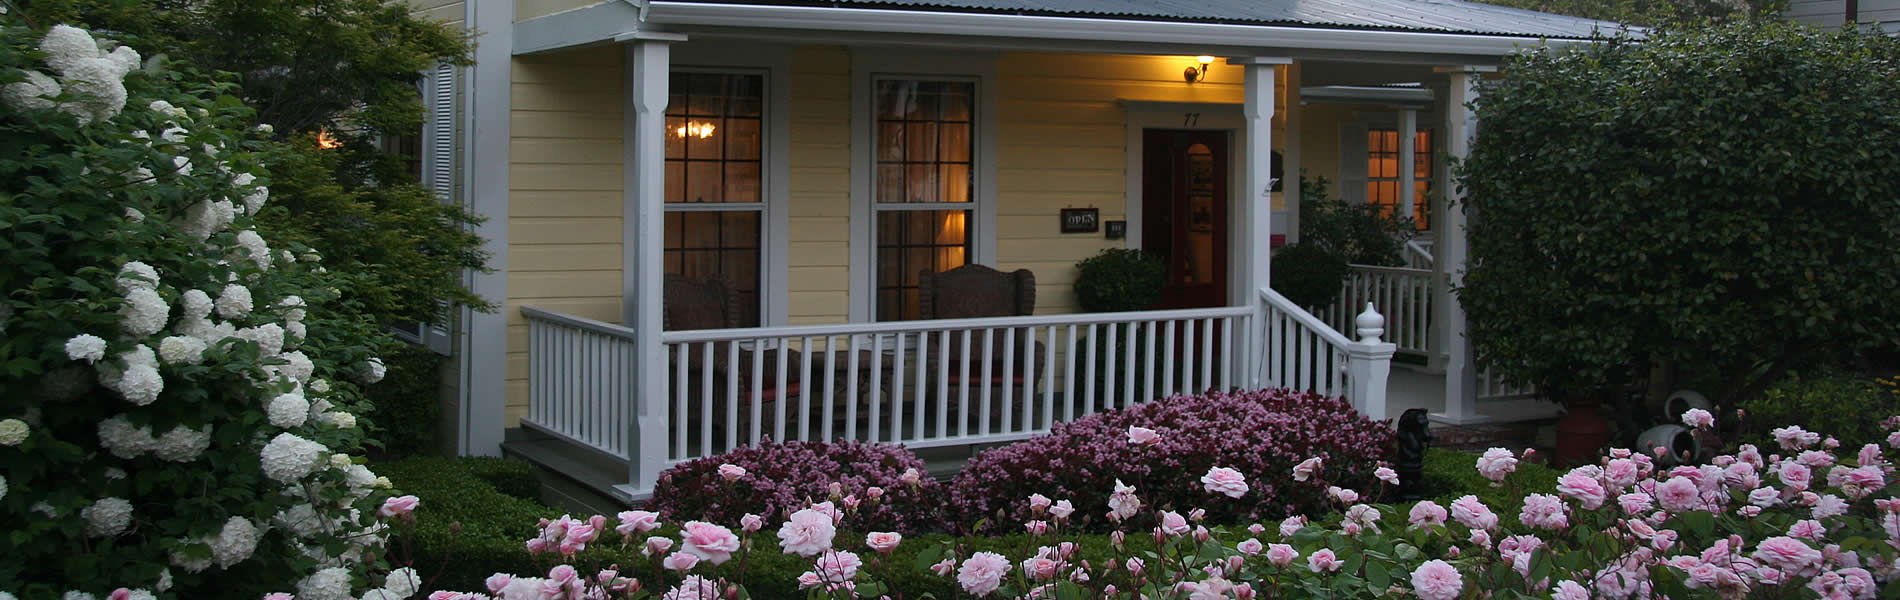 city of sutter creek lodging